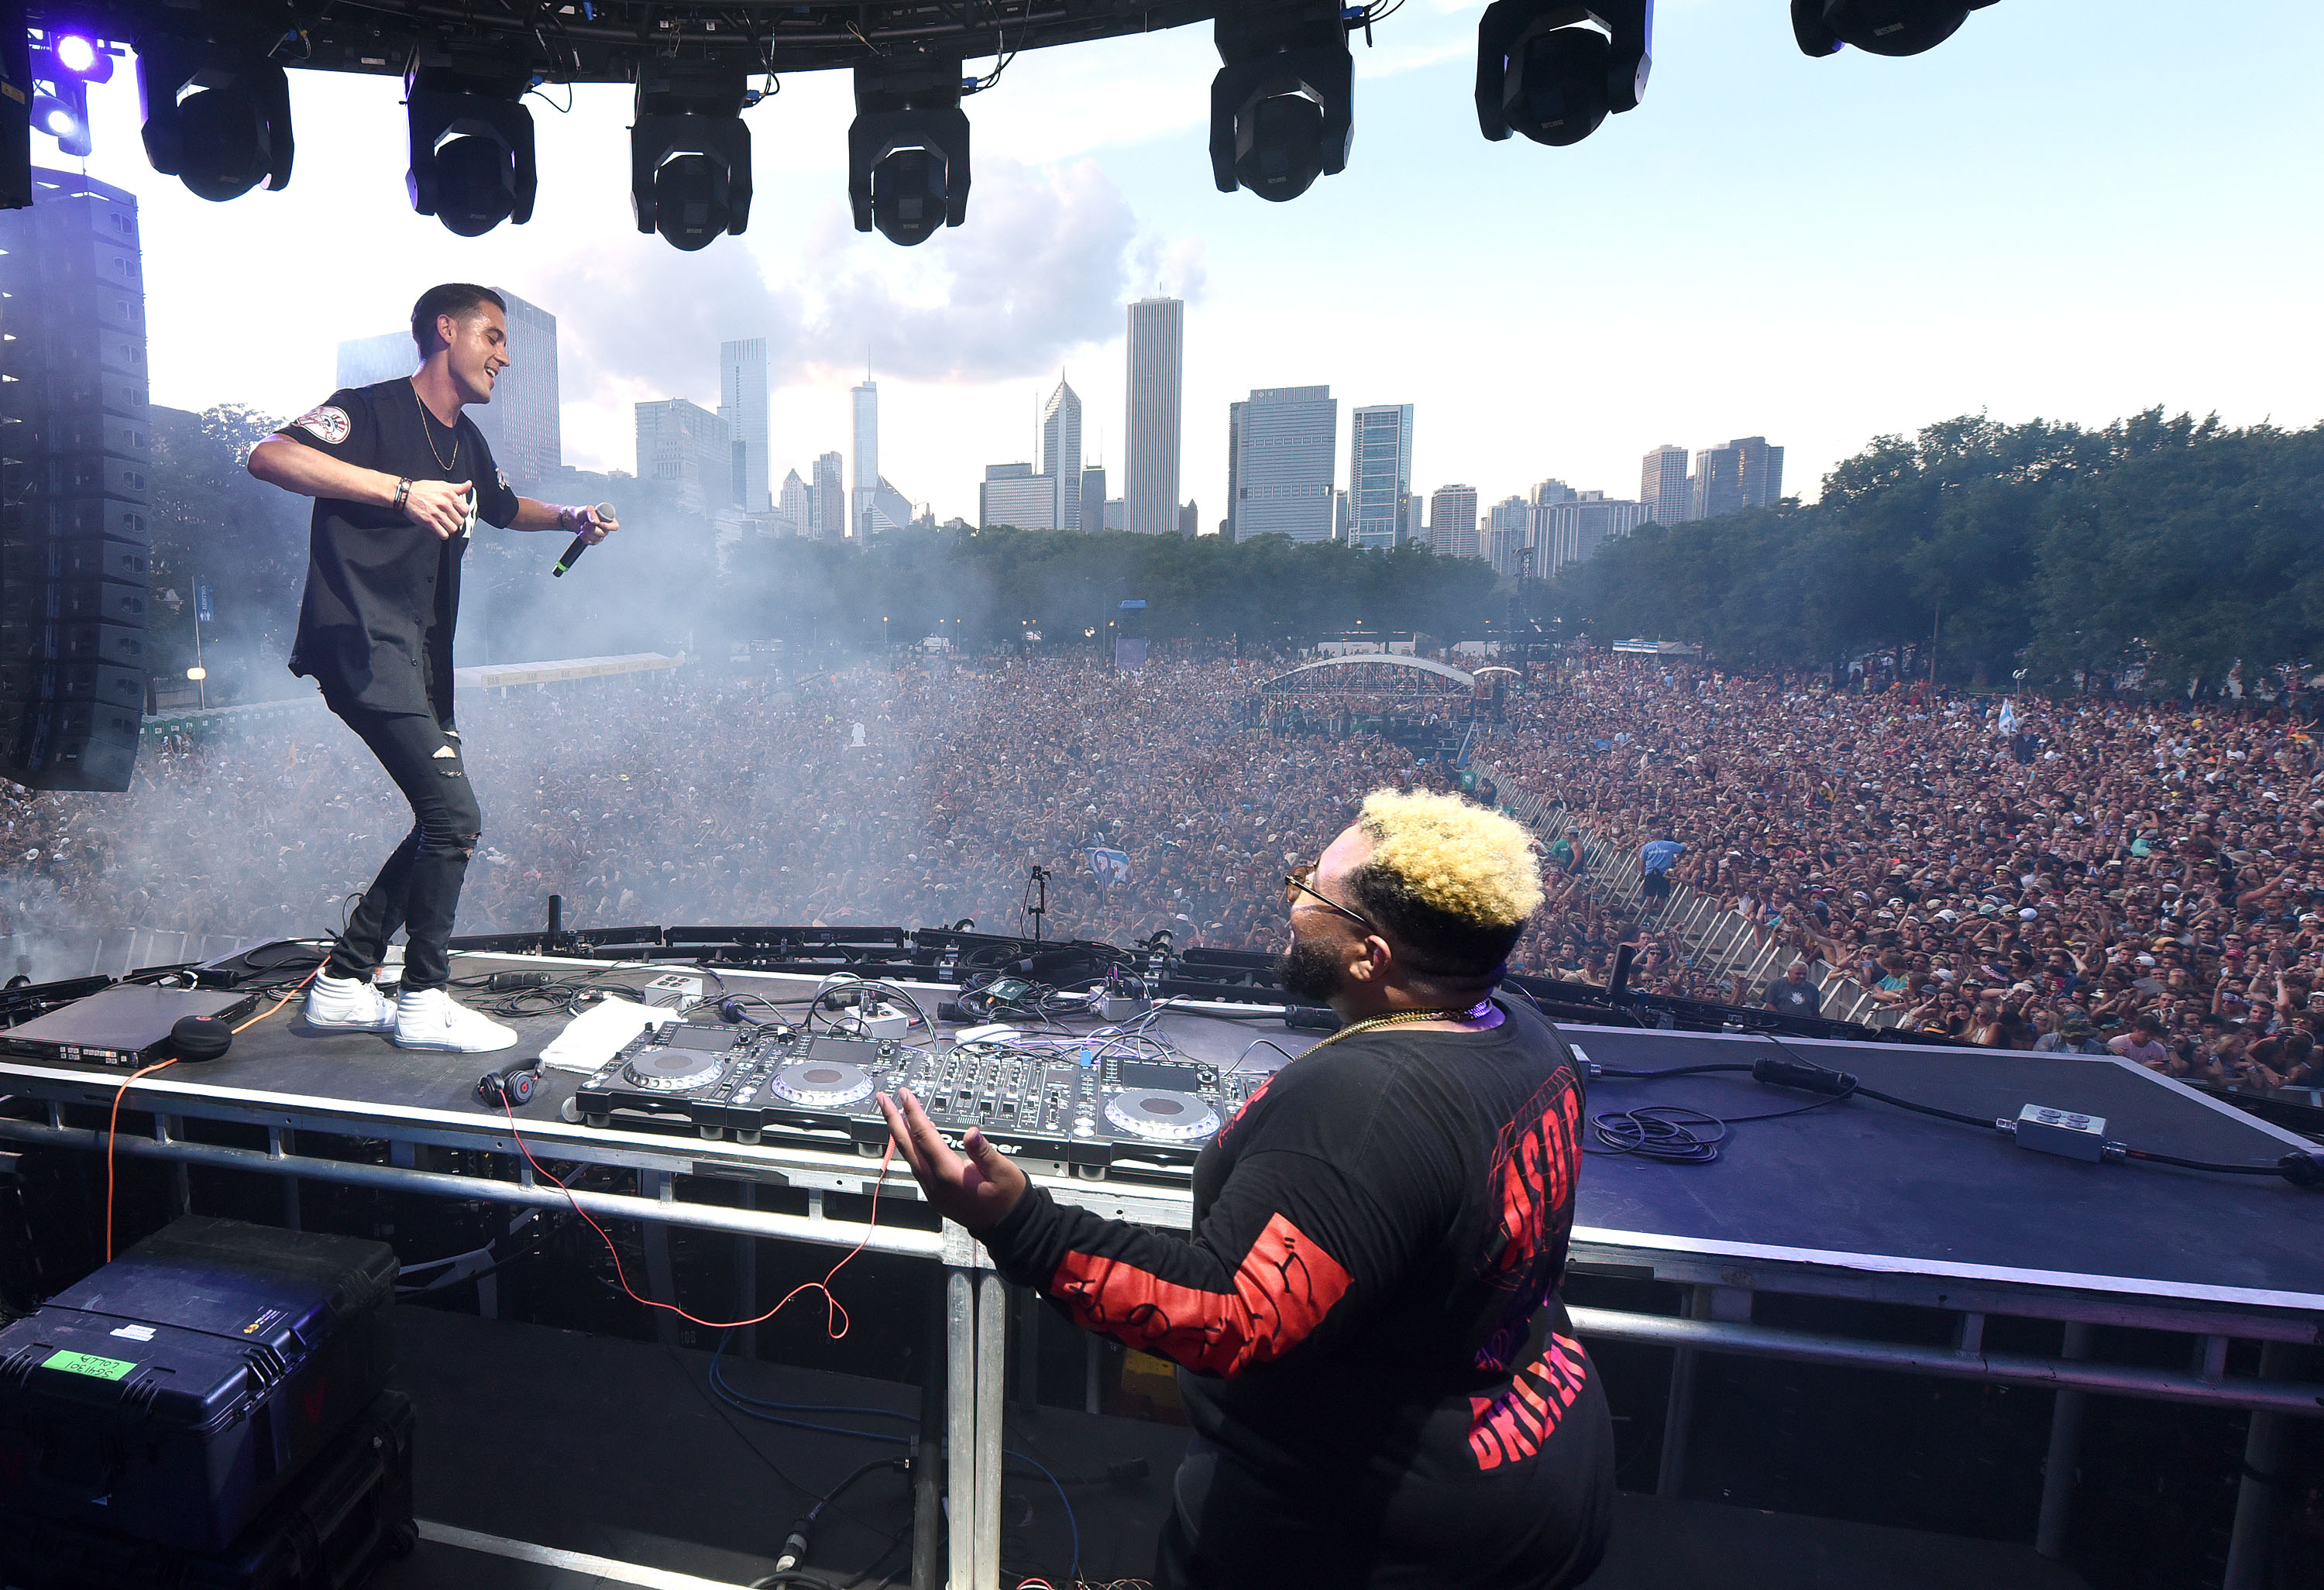 Rapper G-Easy and DJ-producer Carnage perform during the 2015 Lollapalooza Music Festival at Grant Park on Aug. 1, 2015 in Chicago, Ill.